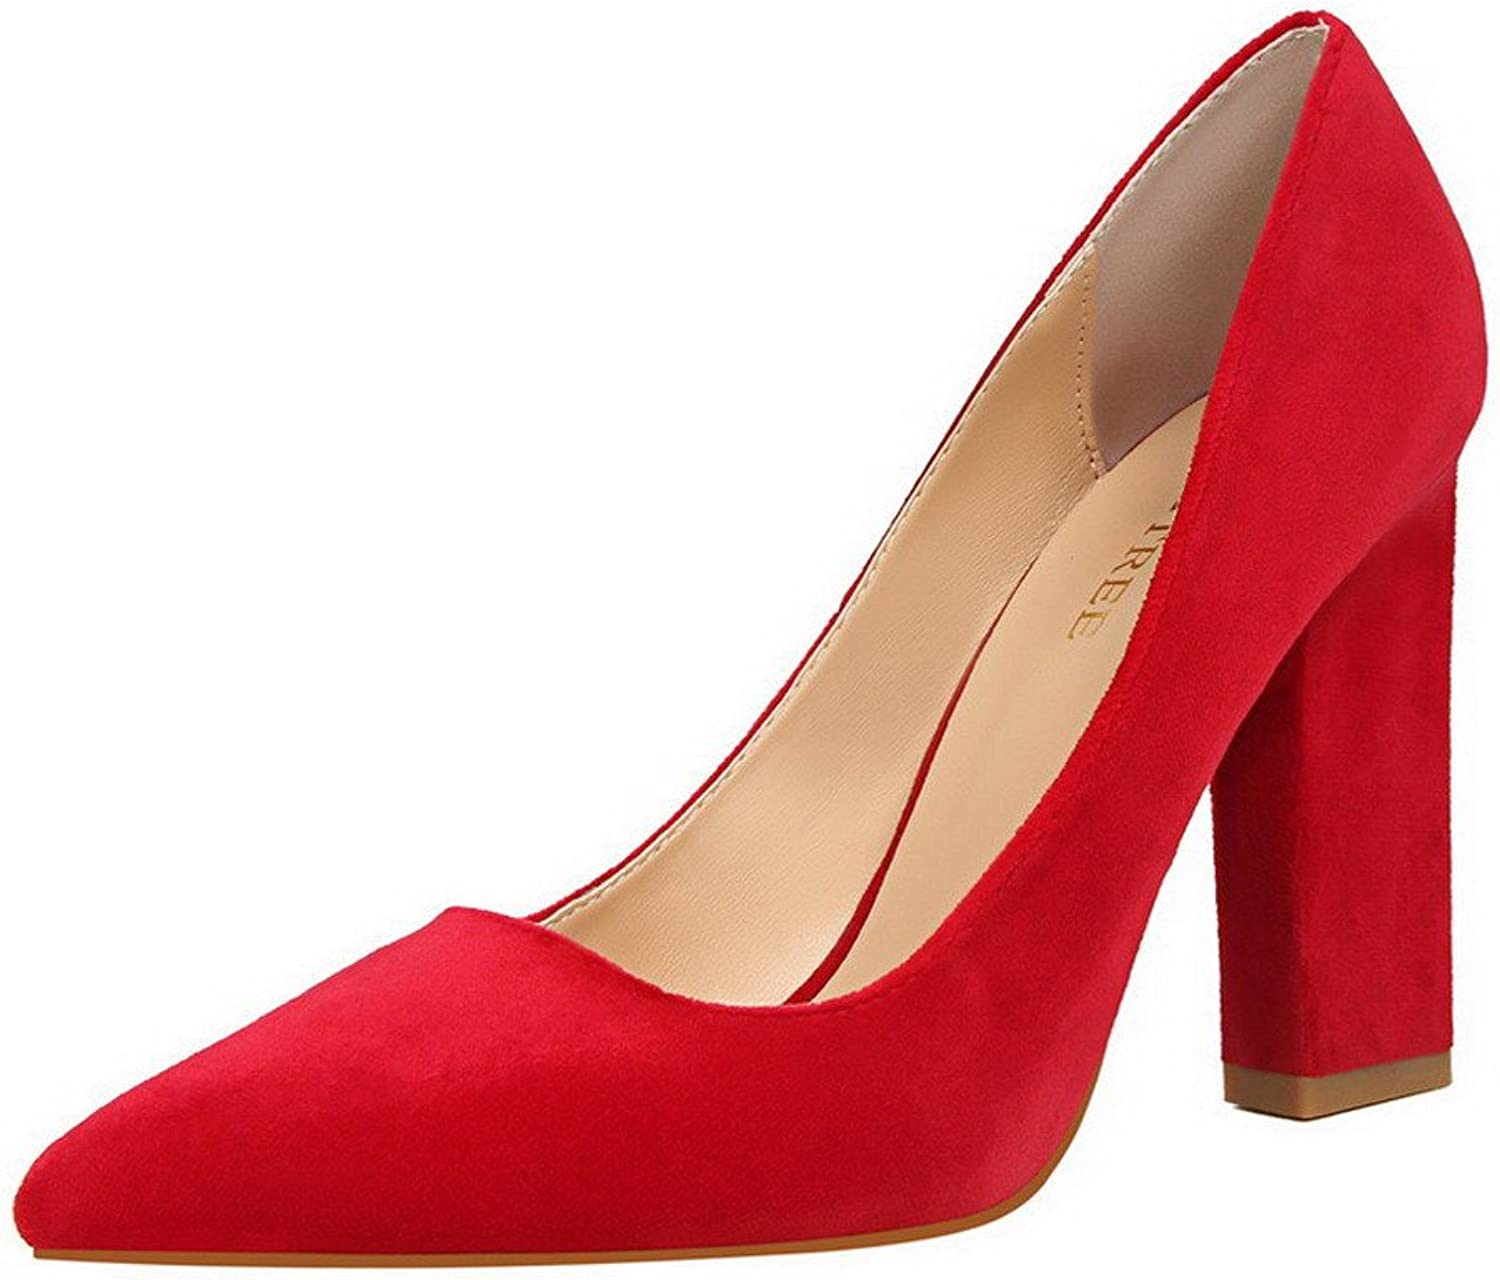 AllhqFashion Women's High-Heels Imitated Suede Pointed-Toe Pull-On Pumps-shoes